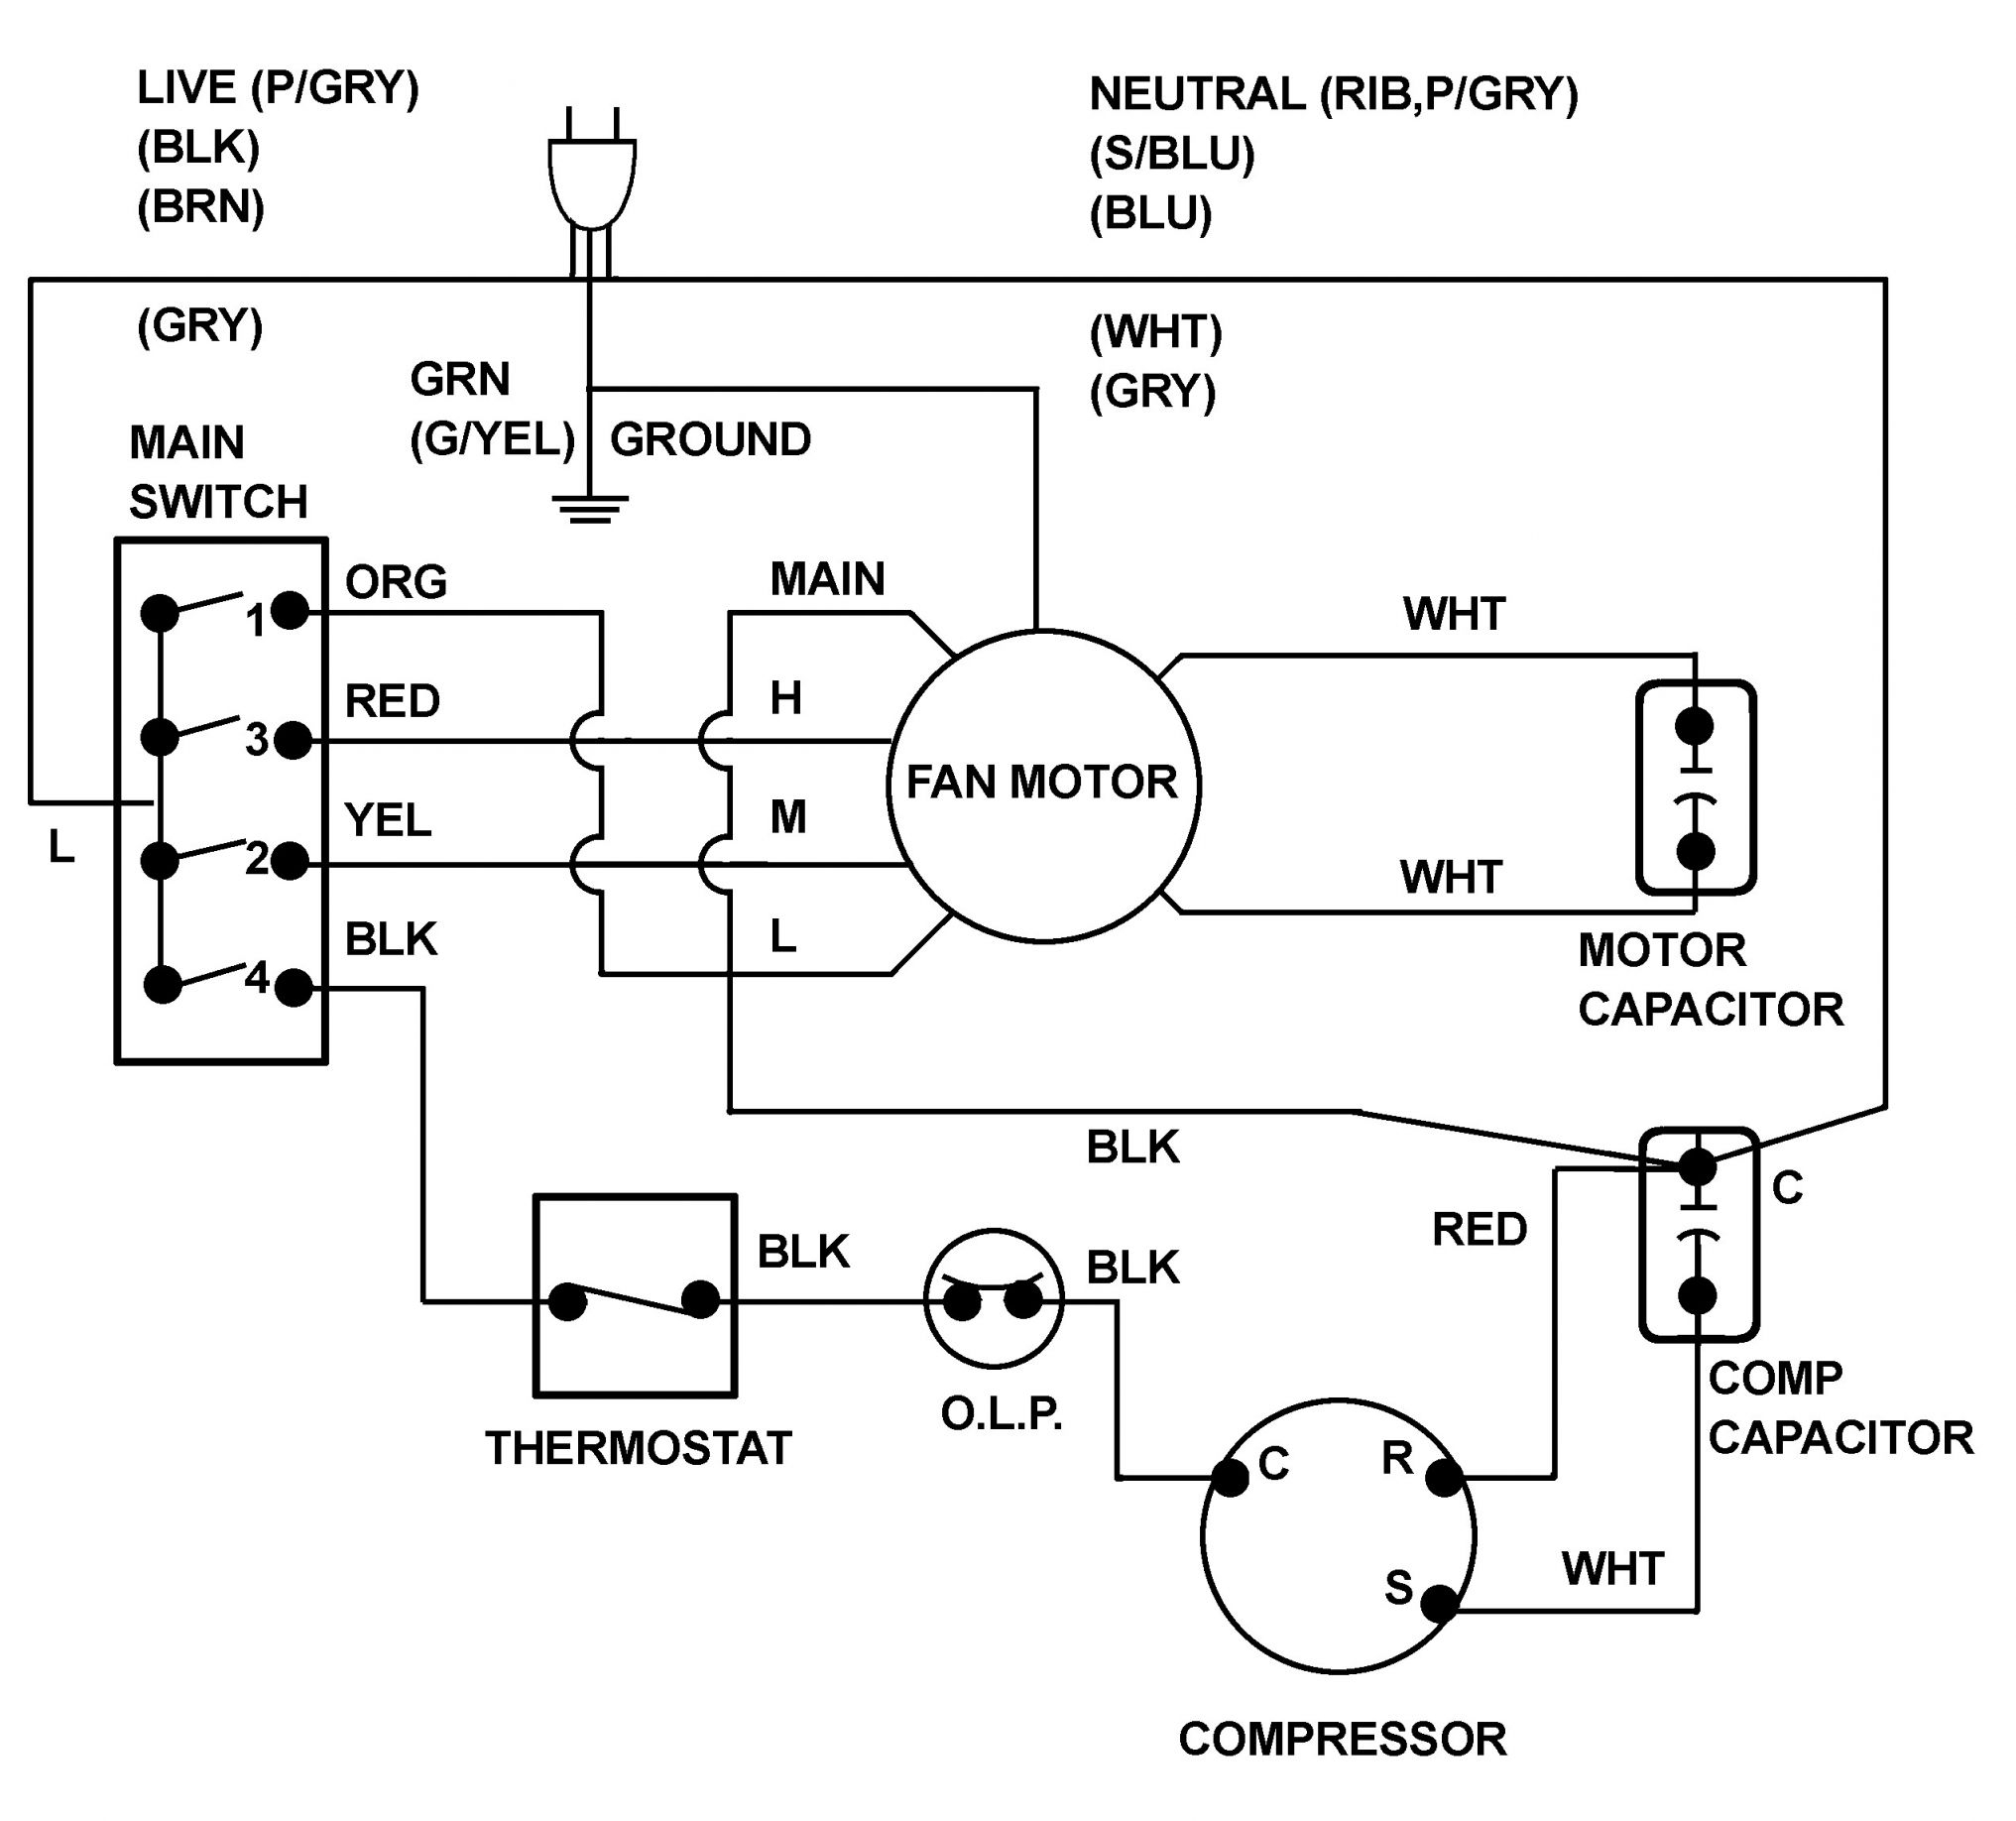 Vintage Air Gen 4 Wiring Diagram from wholefoodsonabudget.com